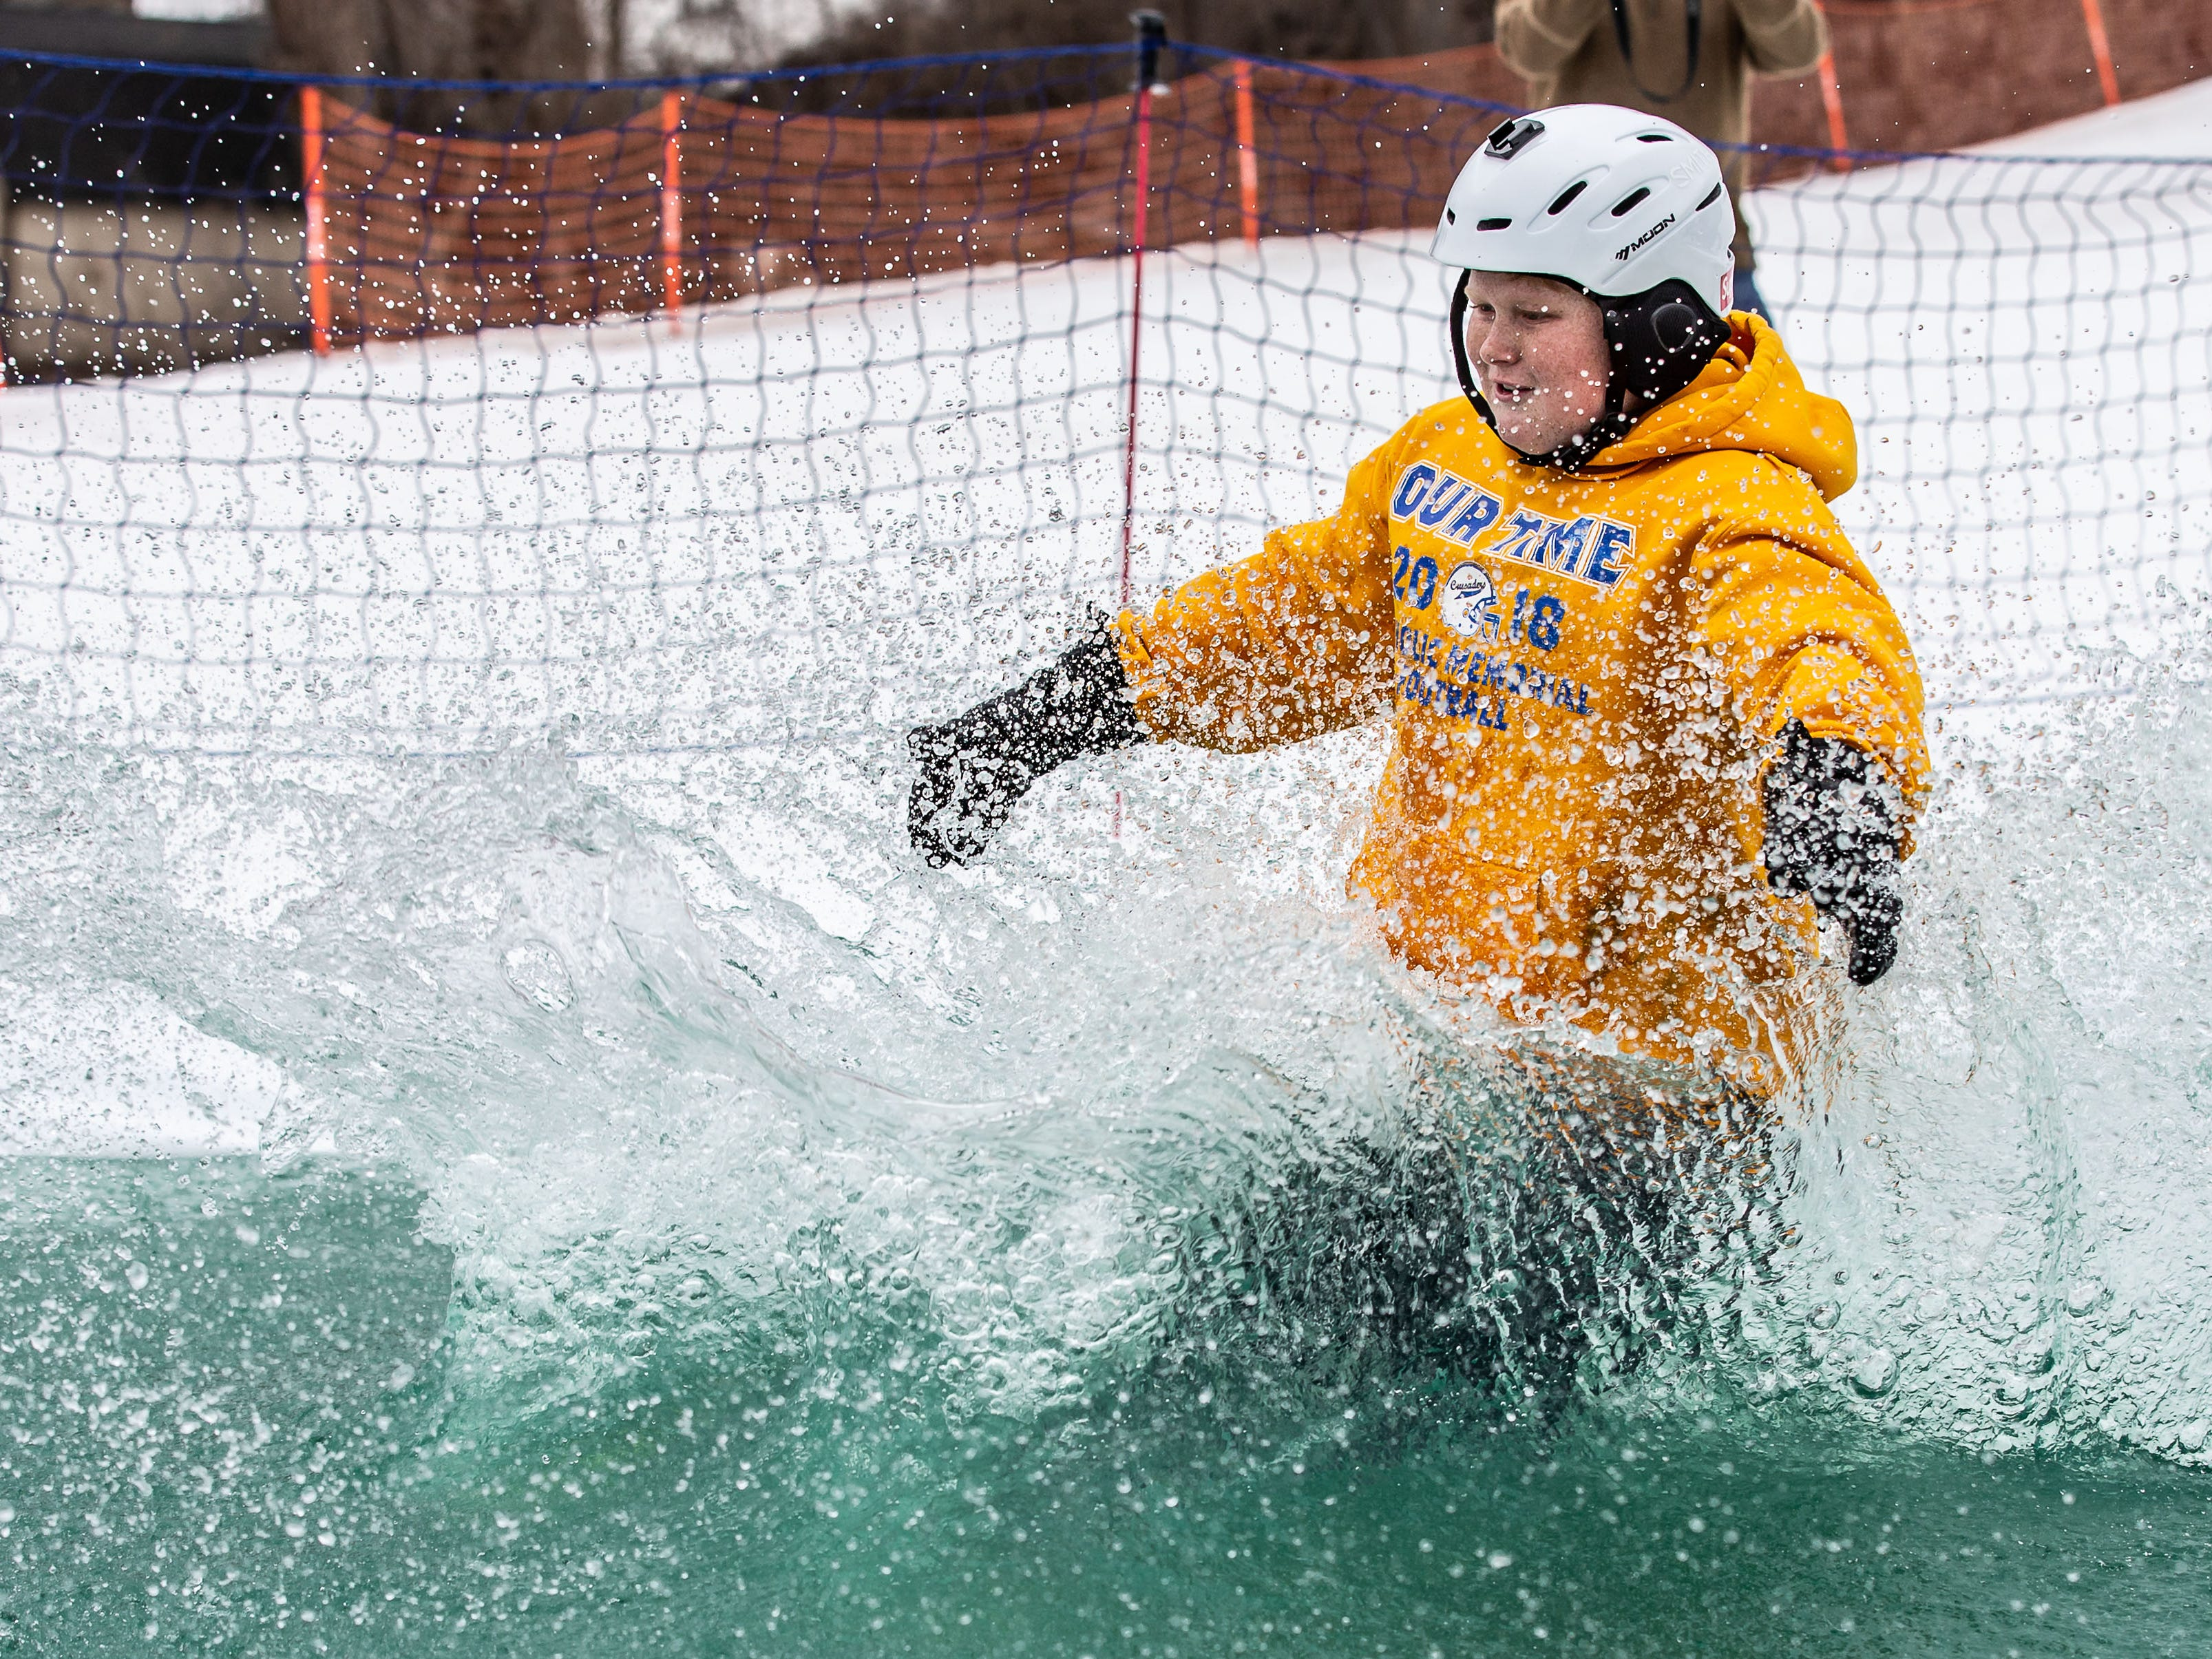 TJ Steidl, 14, of Oconomowoc sinks just short of the finish during the 2nd annual Pond Skim at Ausblick Ski Hill in Sussex on Saturday, April 6, 2019. The pond skim is held on the last day of the season as club members celebrate another fun-filled year on the slopes.